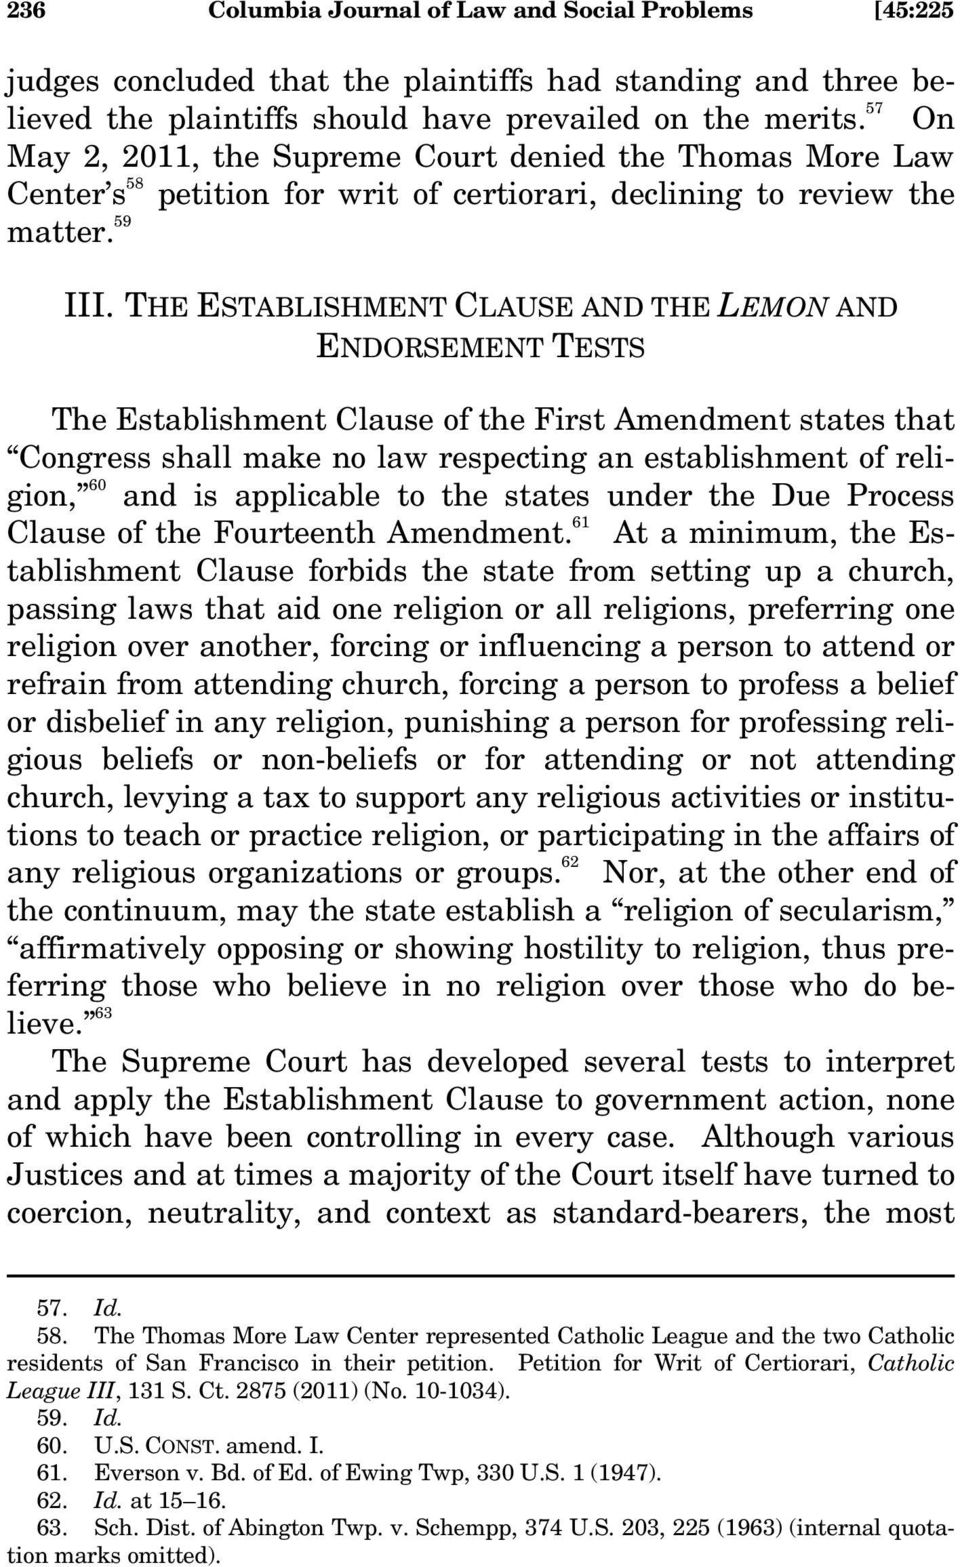 THE ESTABLISHMENT CLAUSE AND THE LEMON AND ENDORSEMENT TESTS The Establishment Clause of the First Amendment states that Congress shall make no law respecting an establishment of religion, 60 and is